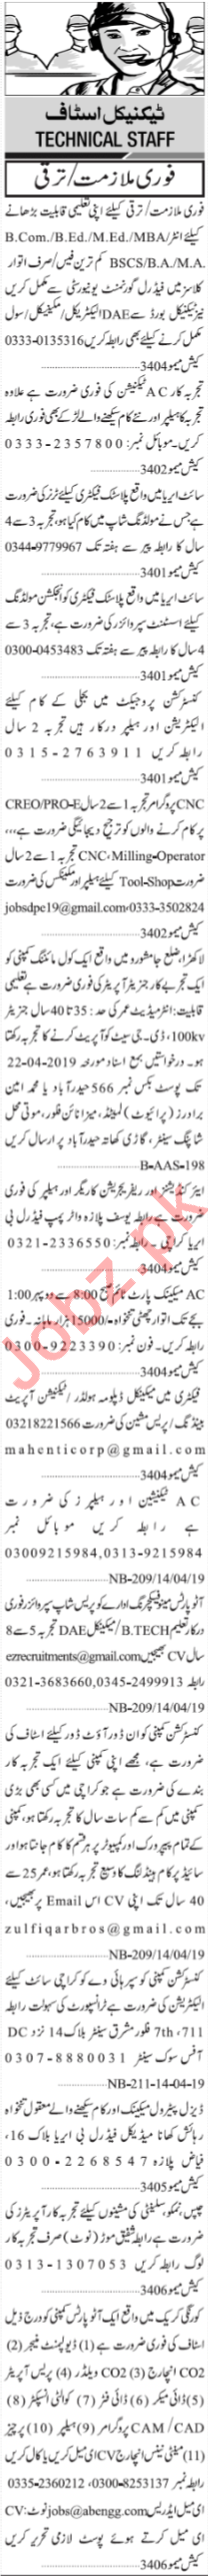 Jang Sunday Classified Ads 14th April 2019 Technical Staff